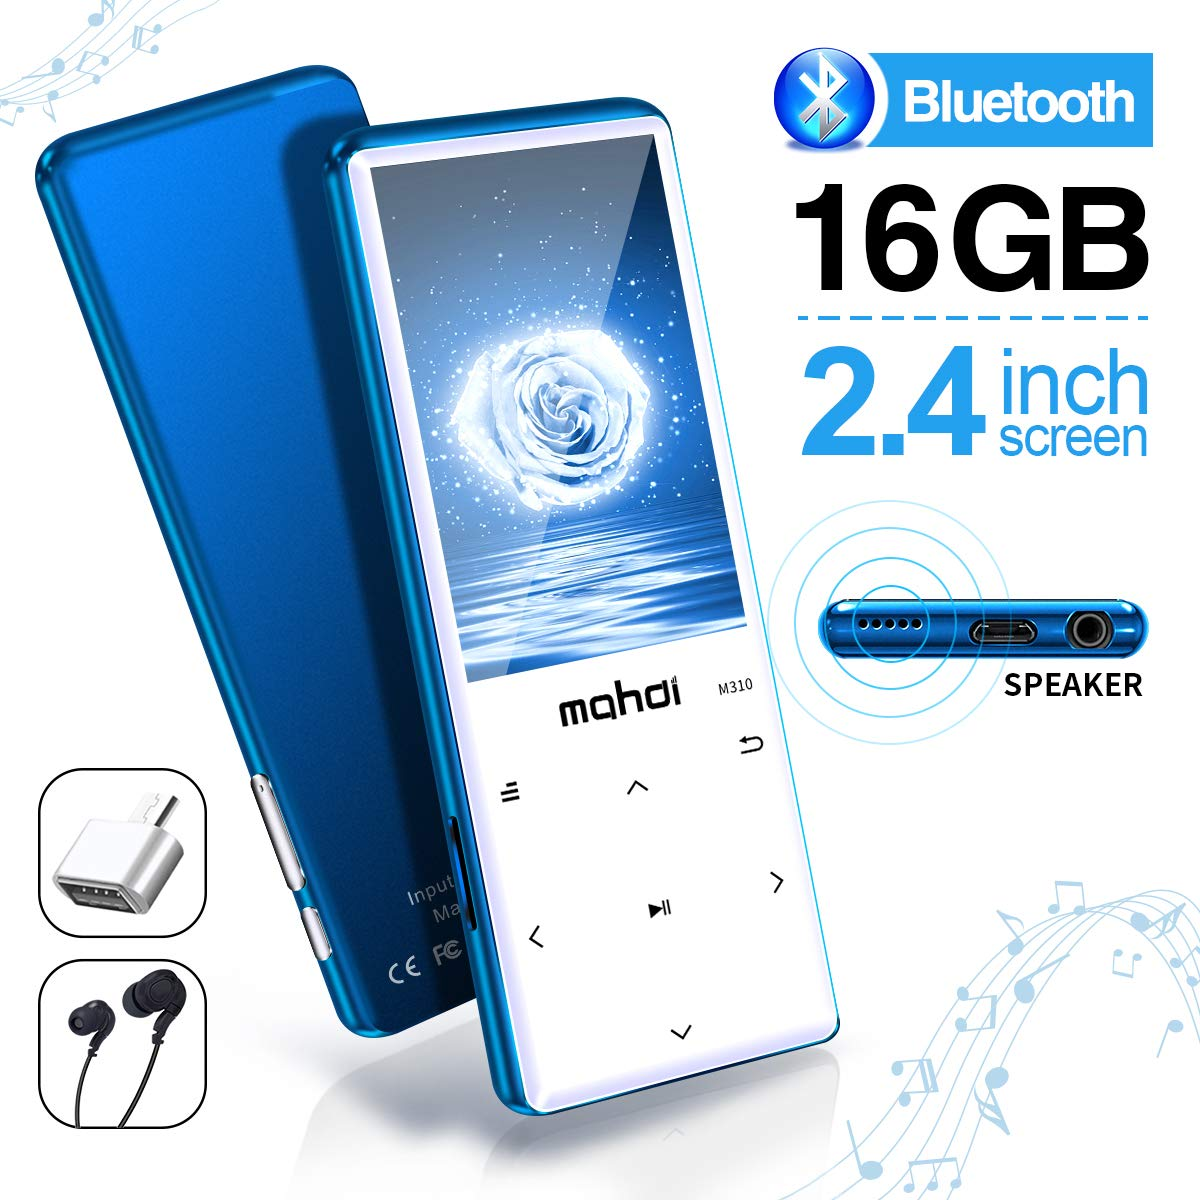 MYMAHDI MP3 Player with Bluetooth 4.2, Touch Buttons with 2.4 inch Screen, 16GB Portable Lossless Digital Audio Player with FM Radio, Voice Recorder, Support up to 128GB, Blue